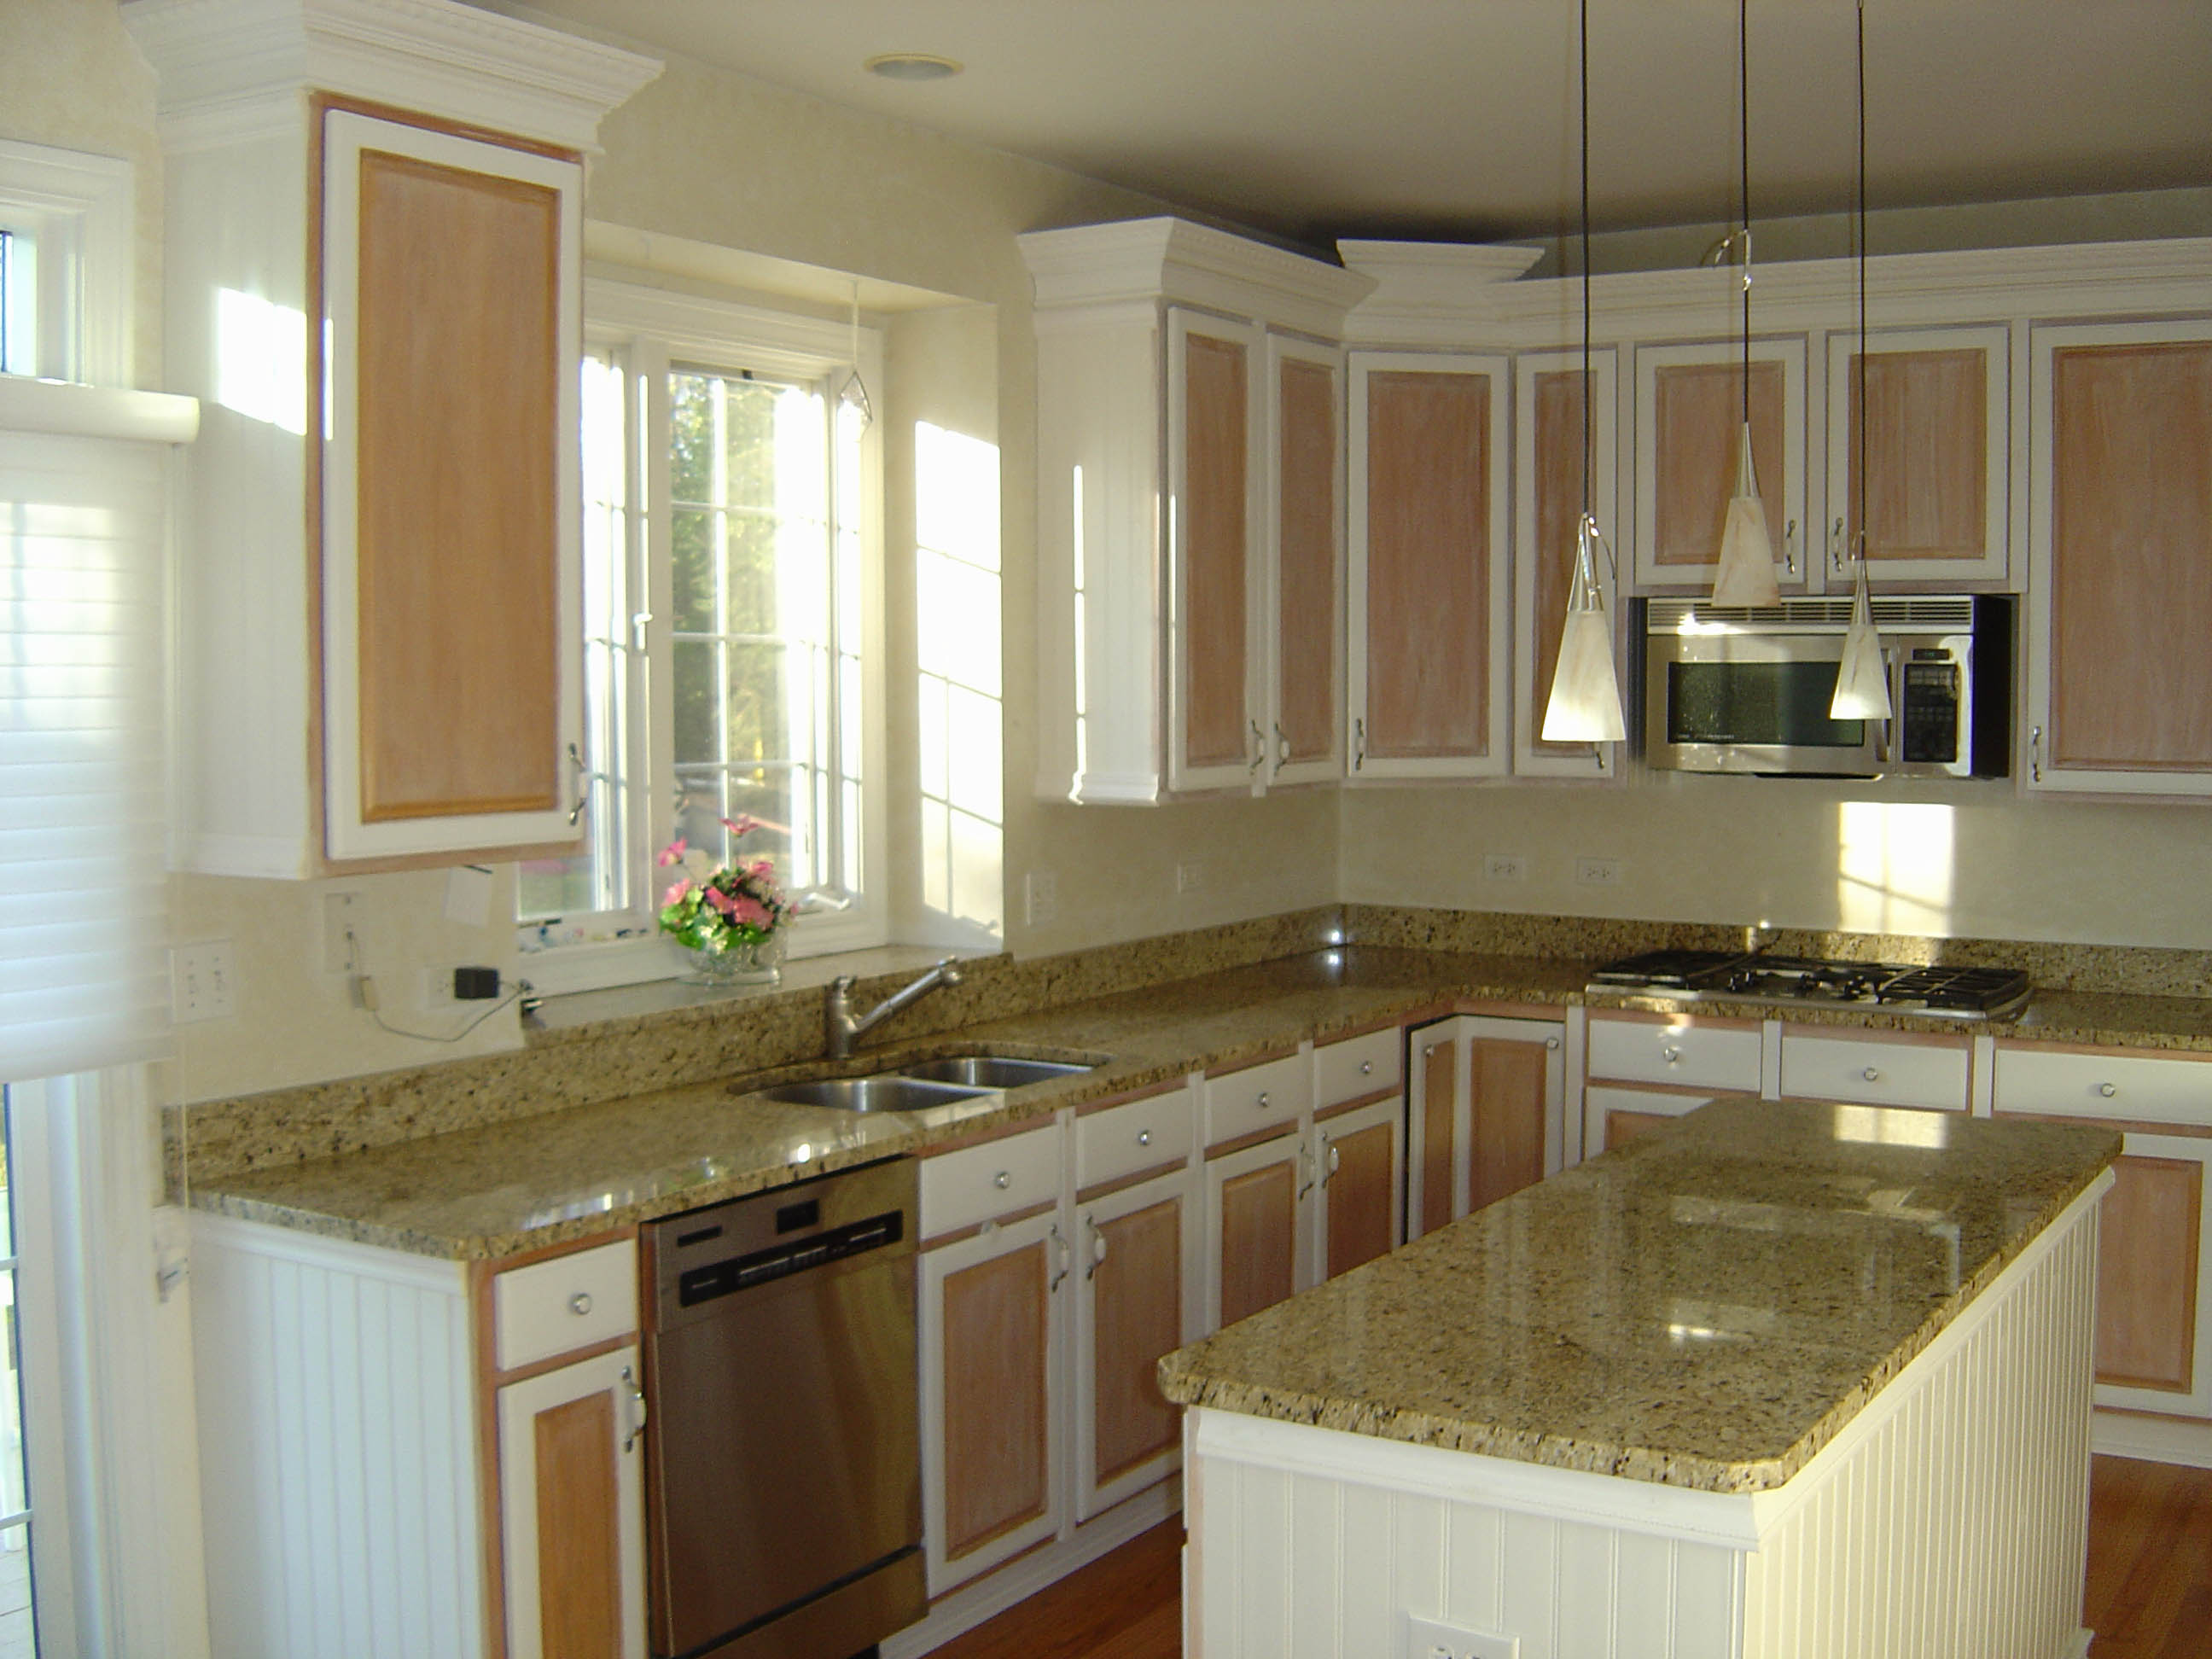 how much does cabinet refacing cost? - affordable cabinet refacing